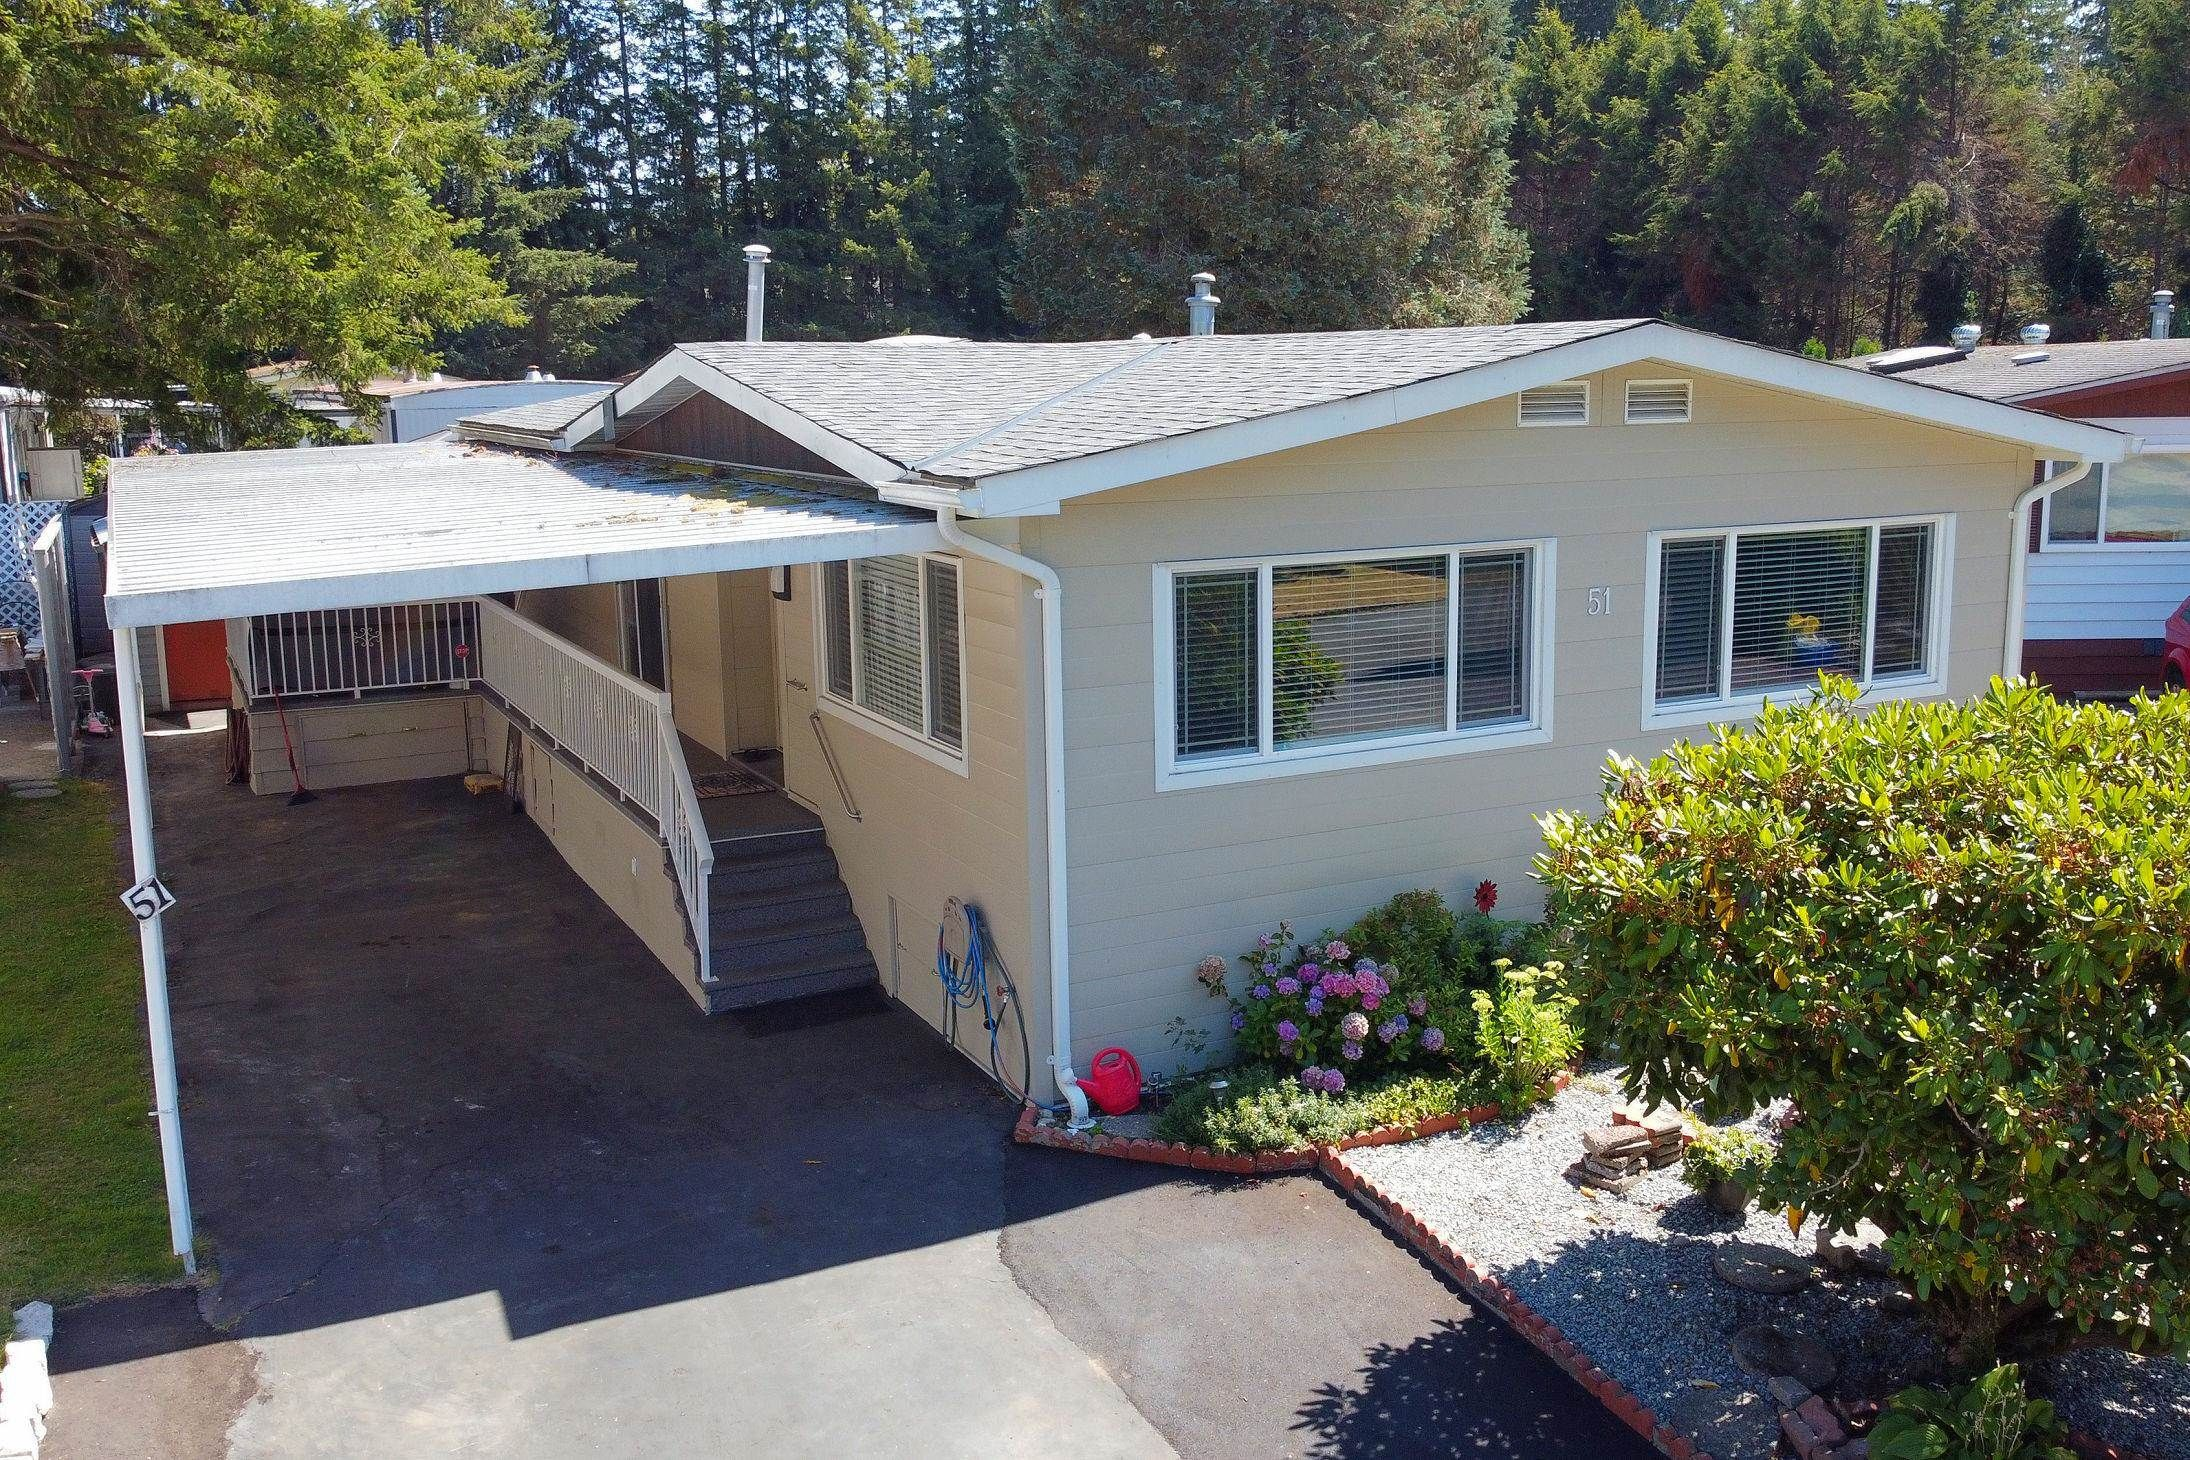 """Main Photo: 51 2305 200 Street in Langley: Brookswood Langley Manufactured Home for sale in """"Cedar Lane"""" : MLS®# R2609129"""